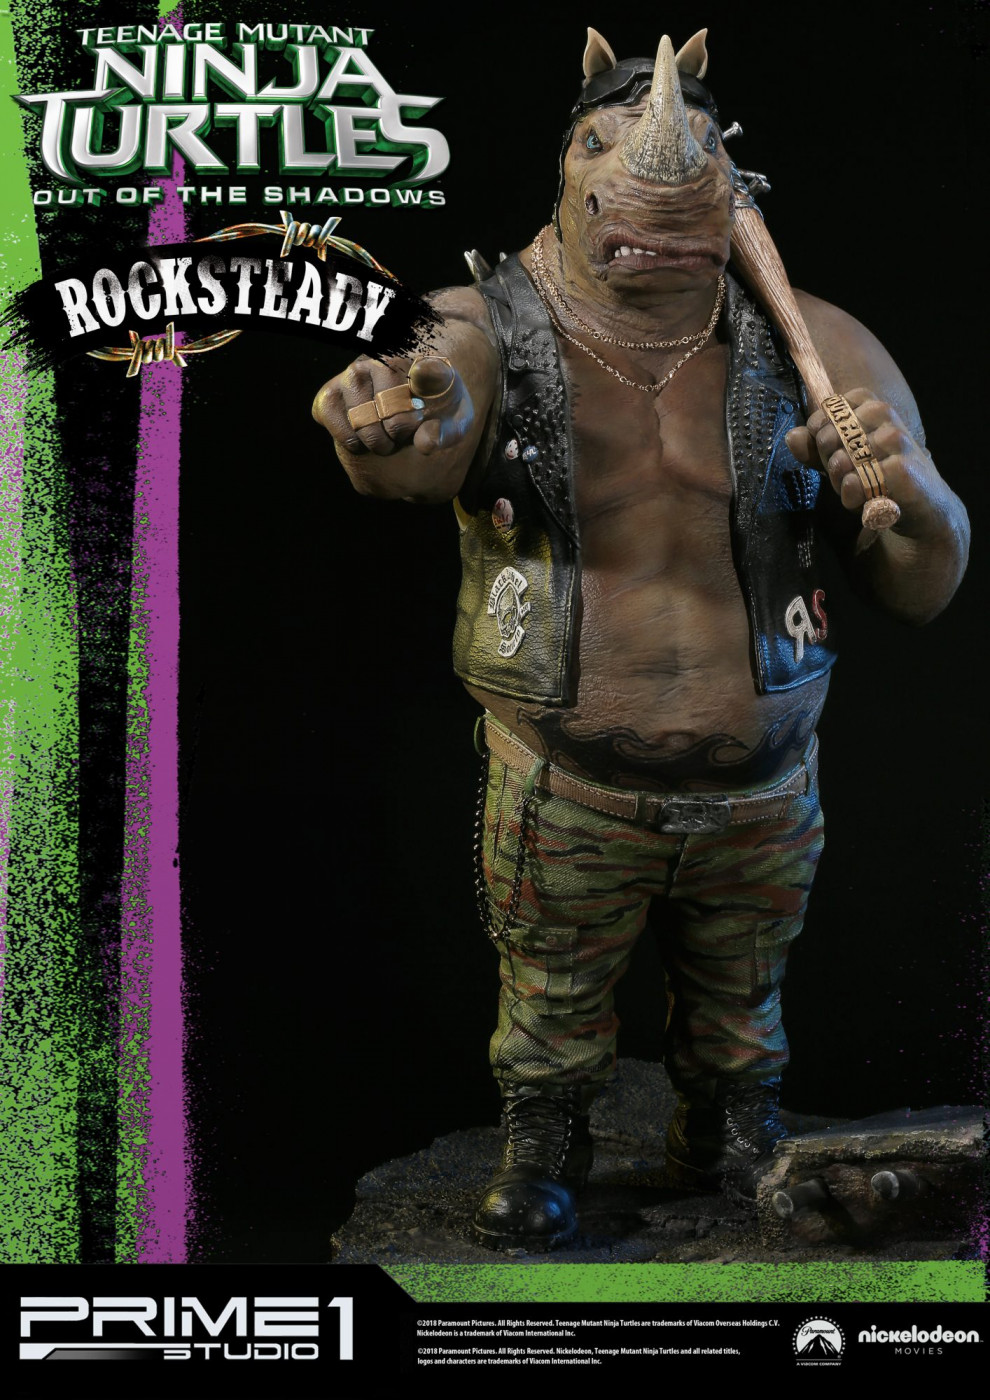 Premium Masterline Teenage Mutant Ninja Turtles: Out of the Shadows Rocksteady